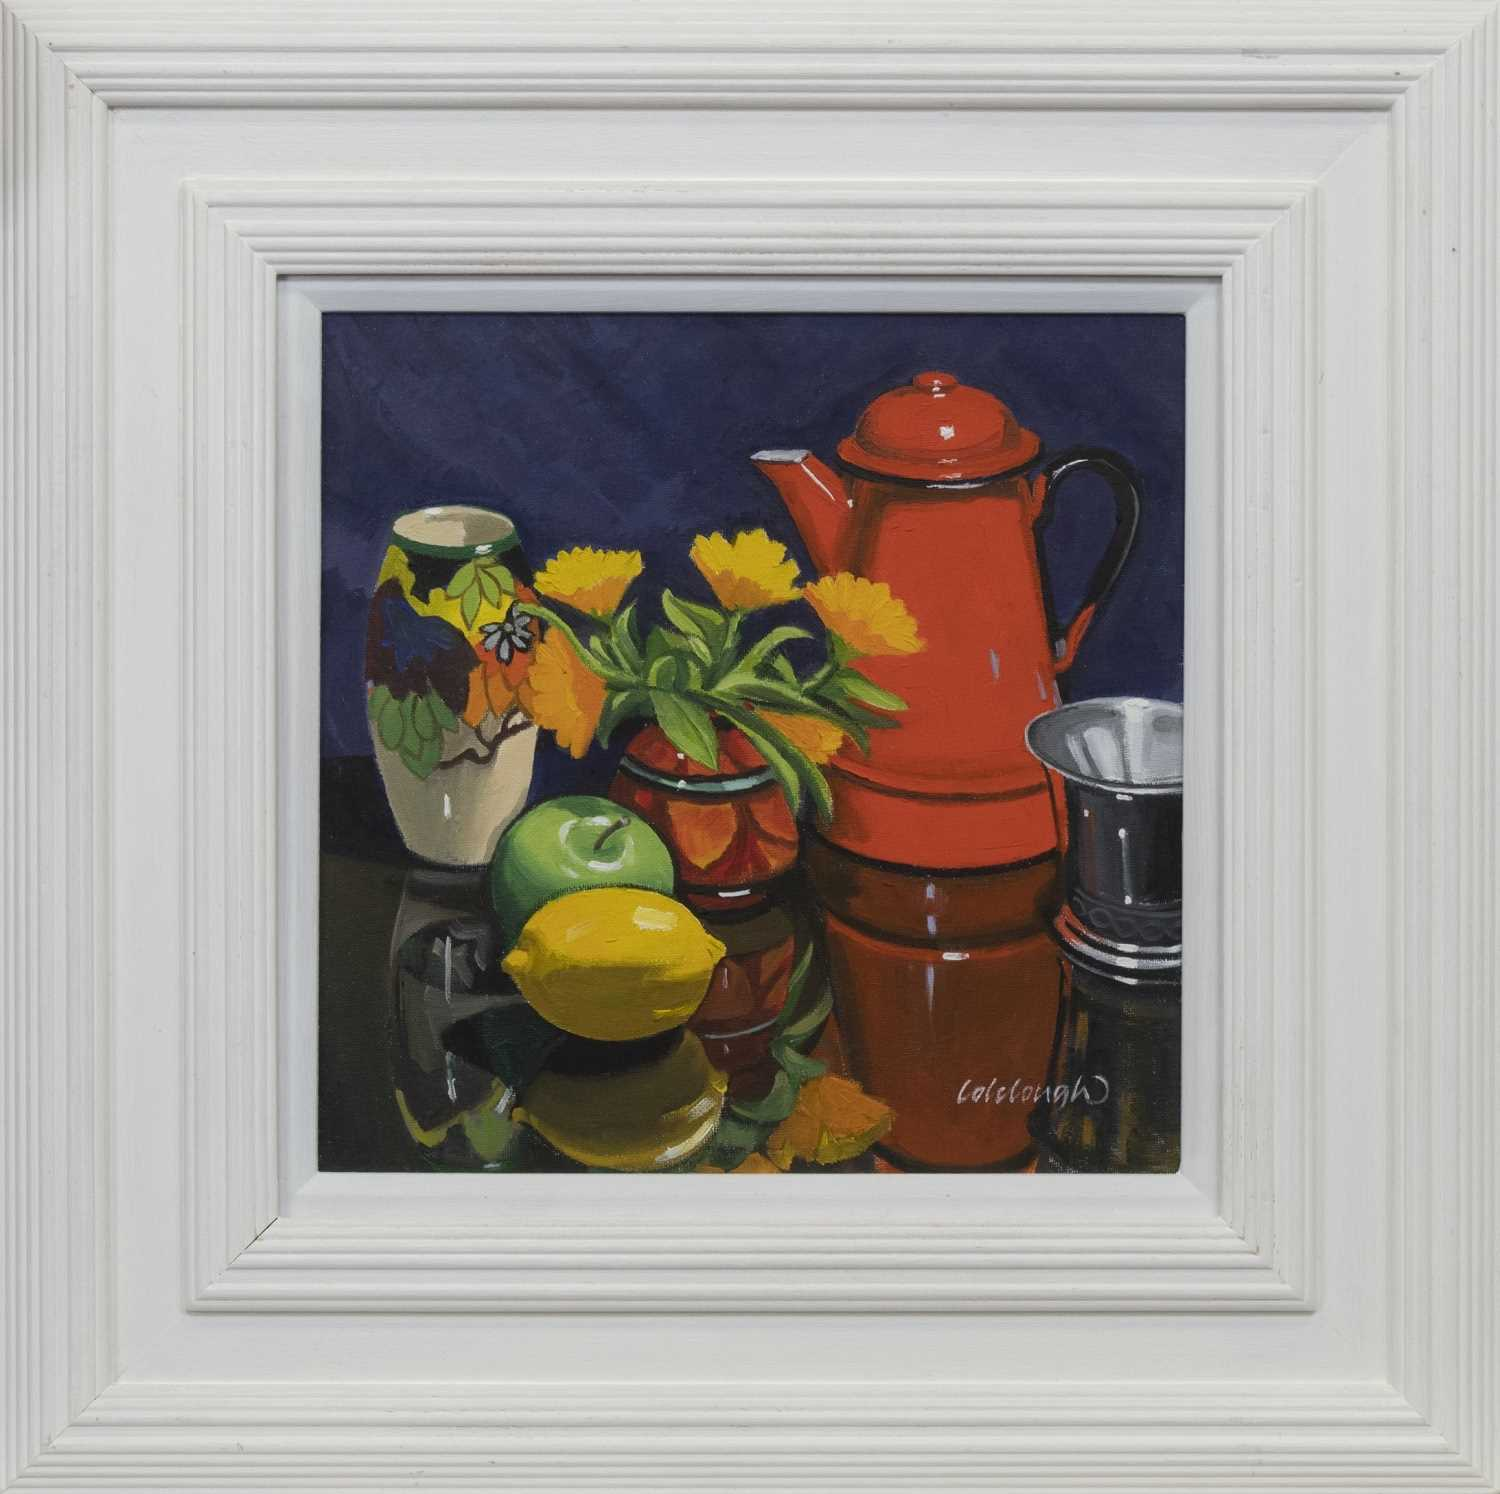 Lot 513 - COFFEE POT STUDY WITH MARIGOLDS, AN OIL BY FRANK COLCOUGH